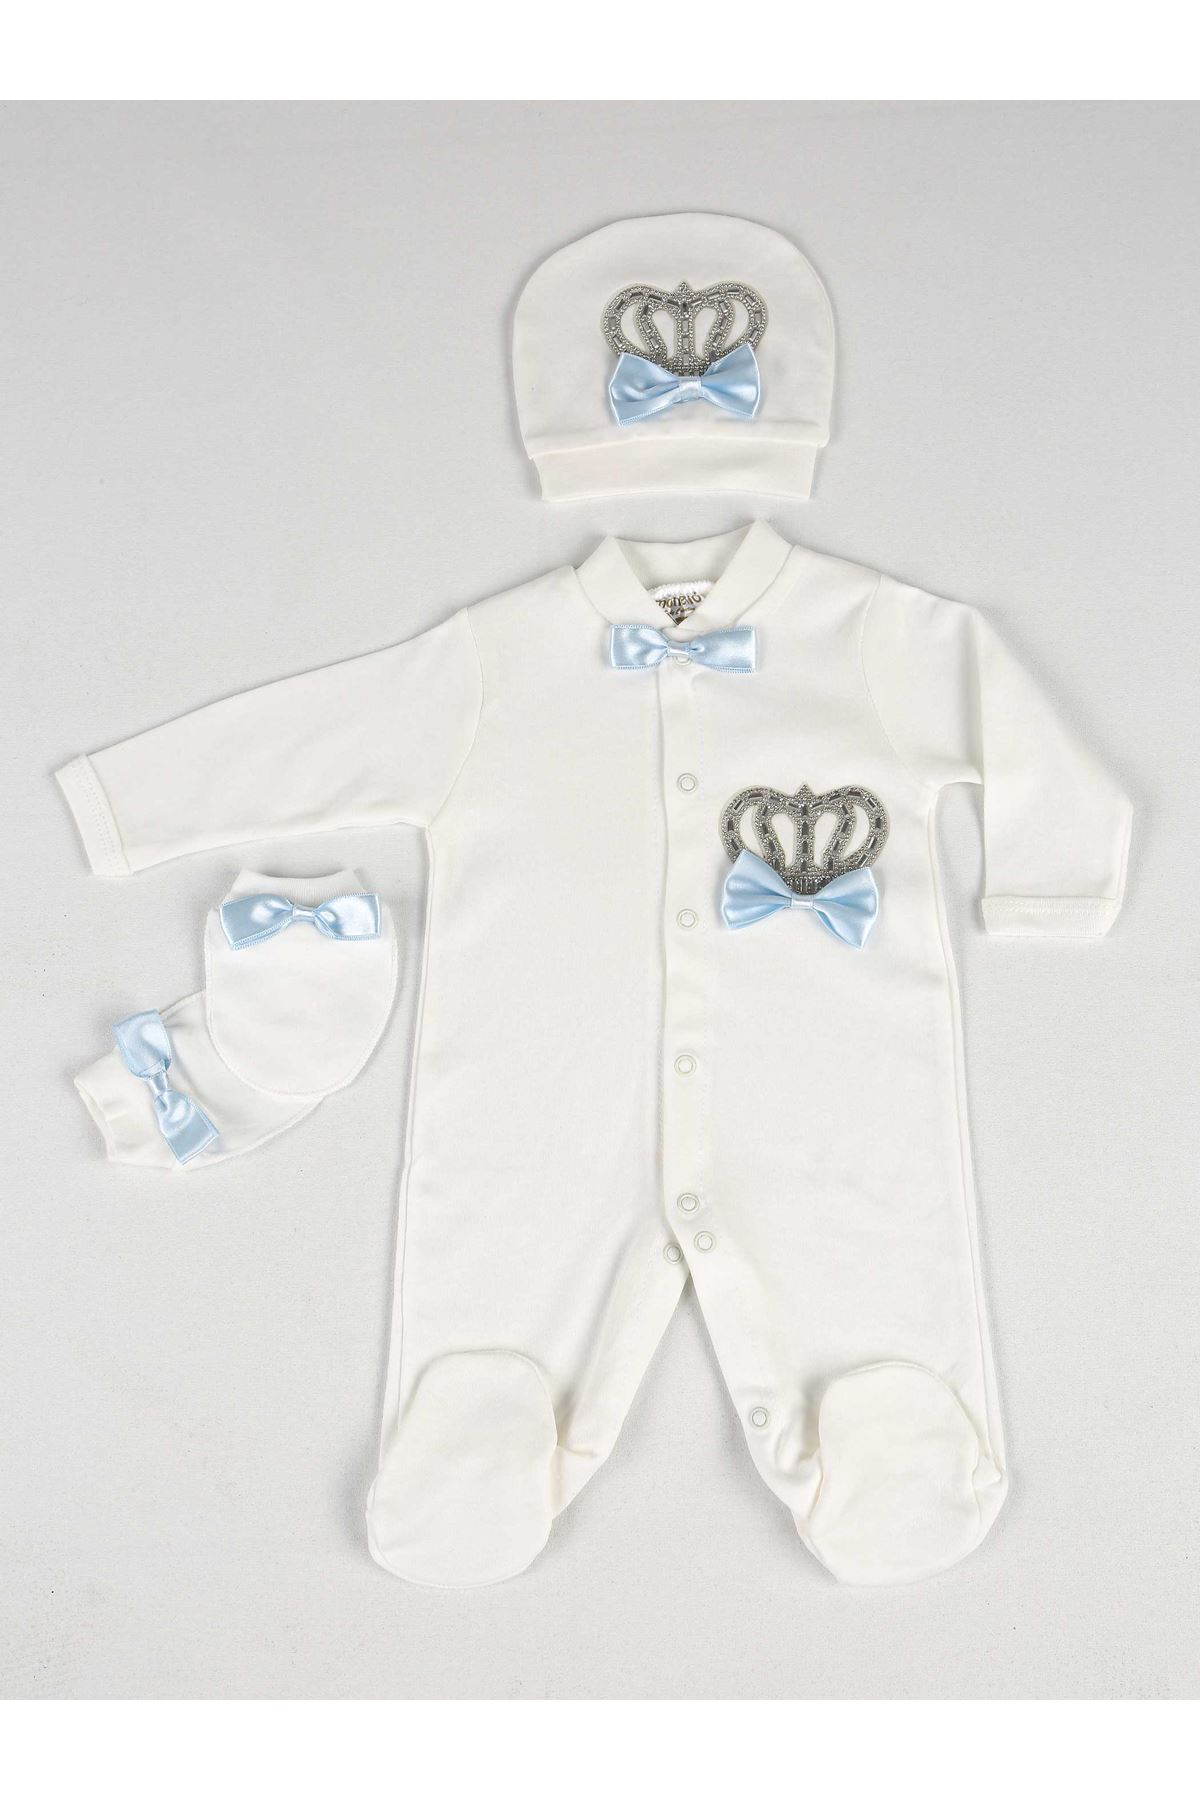 White King PCs Set Male Baby Rompers